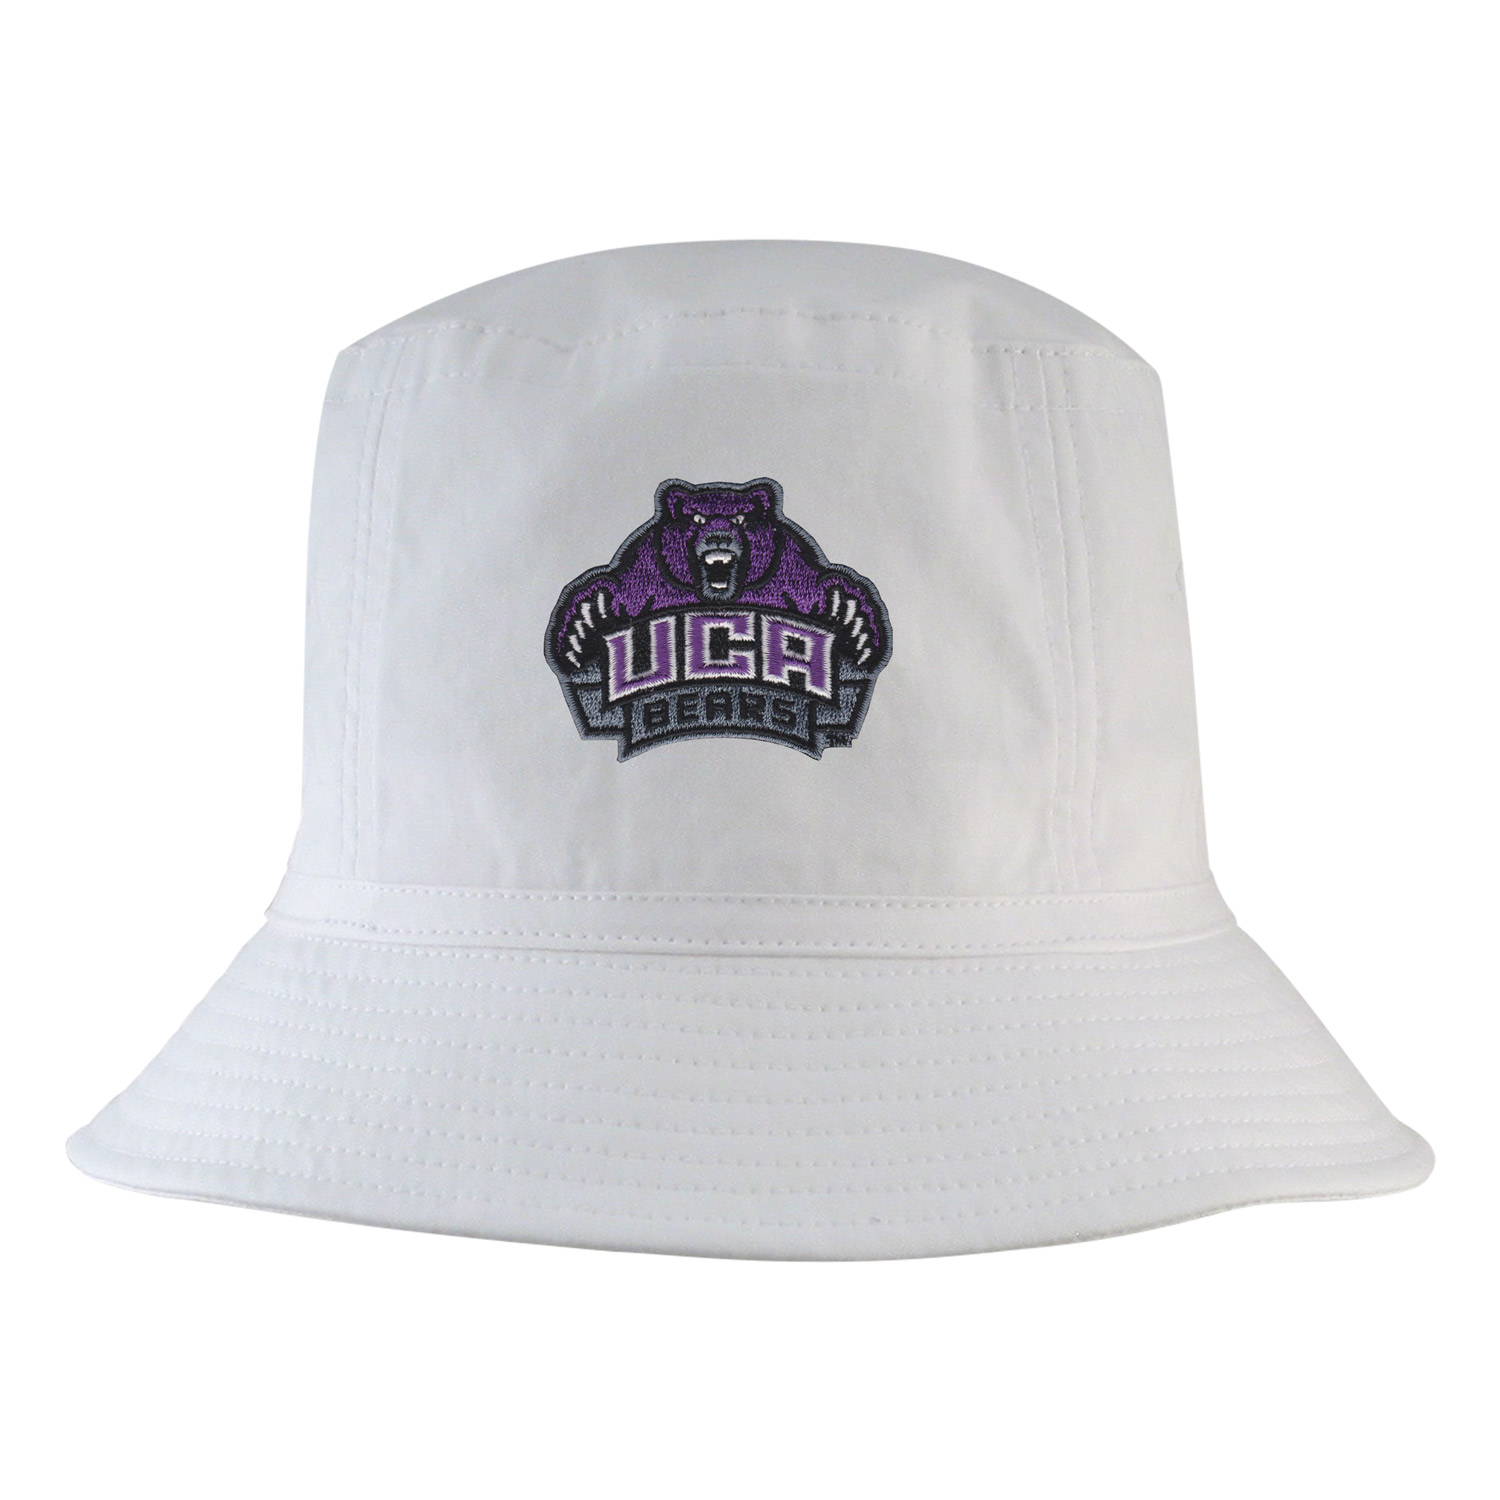 Lightweight Washed Cotton Bucket Hat